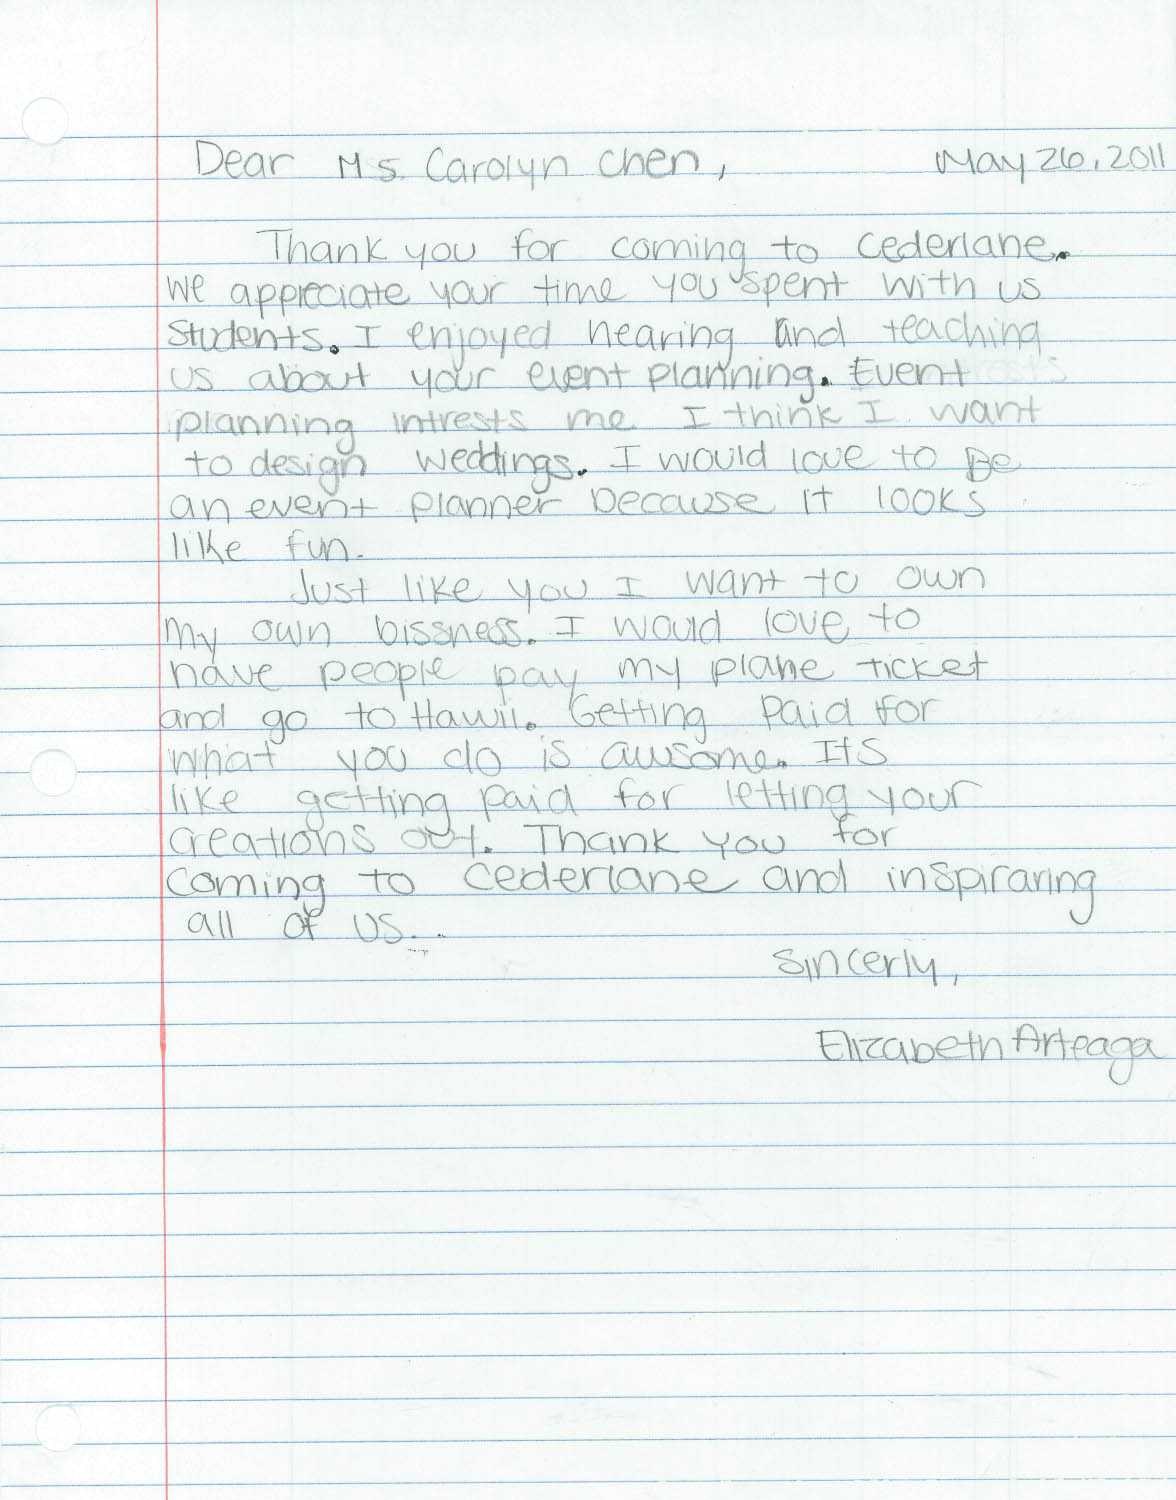 Our Invitation To Career Day At Cedarlane Academy In Hacienda